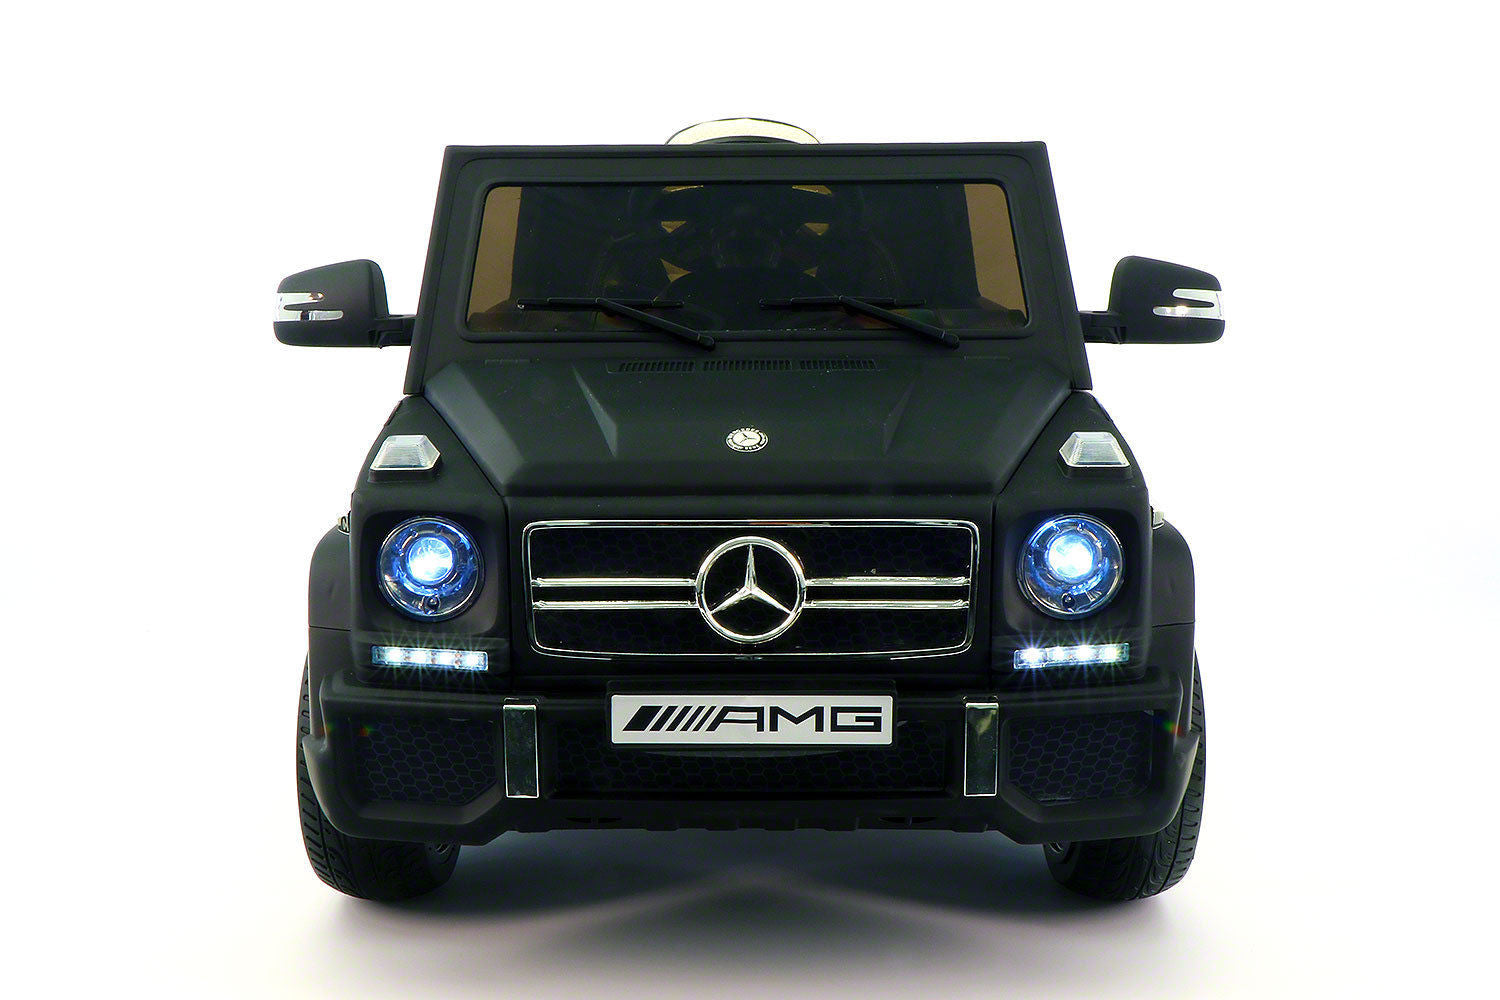 Mercedes benz g65 amg 12v battery powered ride on toy car for Mercedes benz ride on toy car